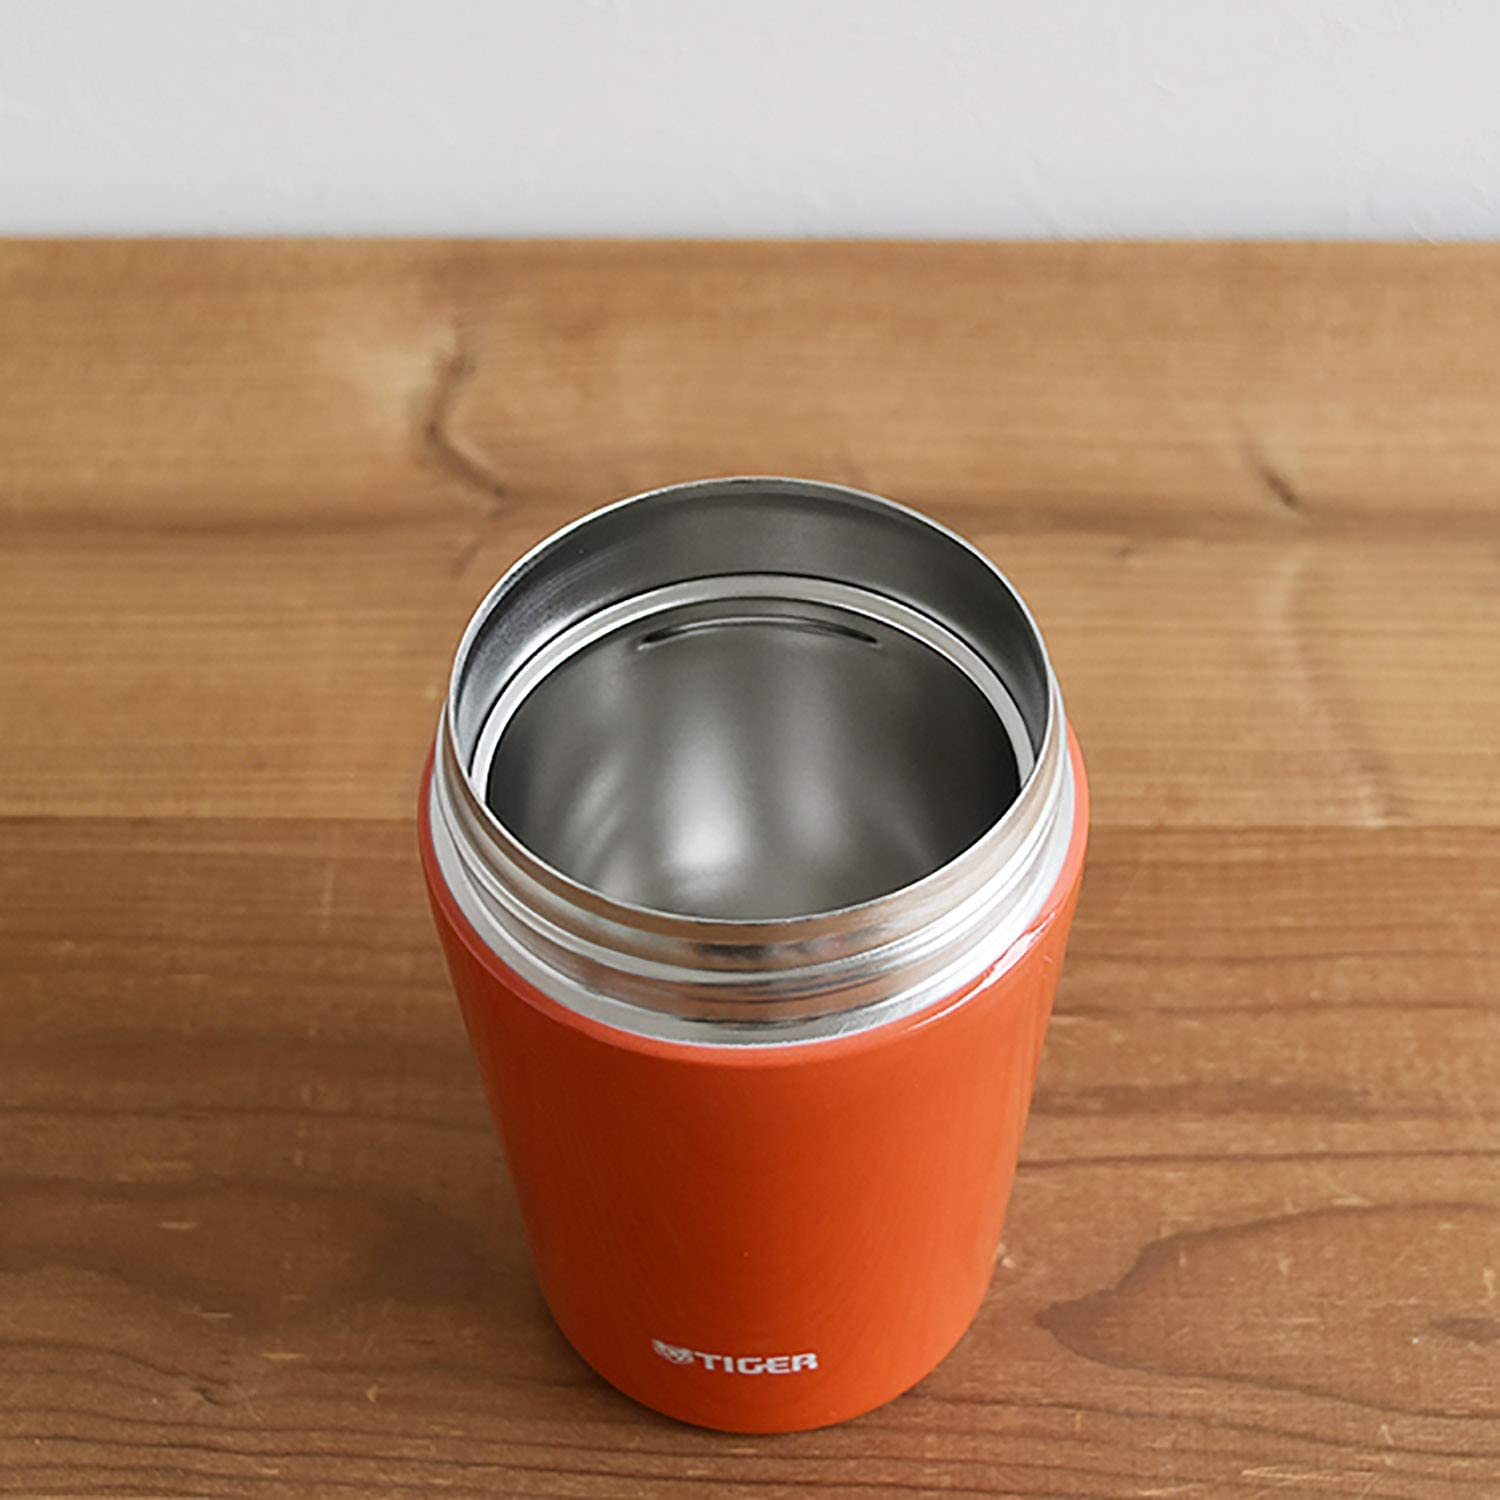 Tiger thermos vacuum insulation soup jar 380ml warm lunch box MCL-B038-RC